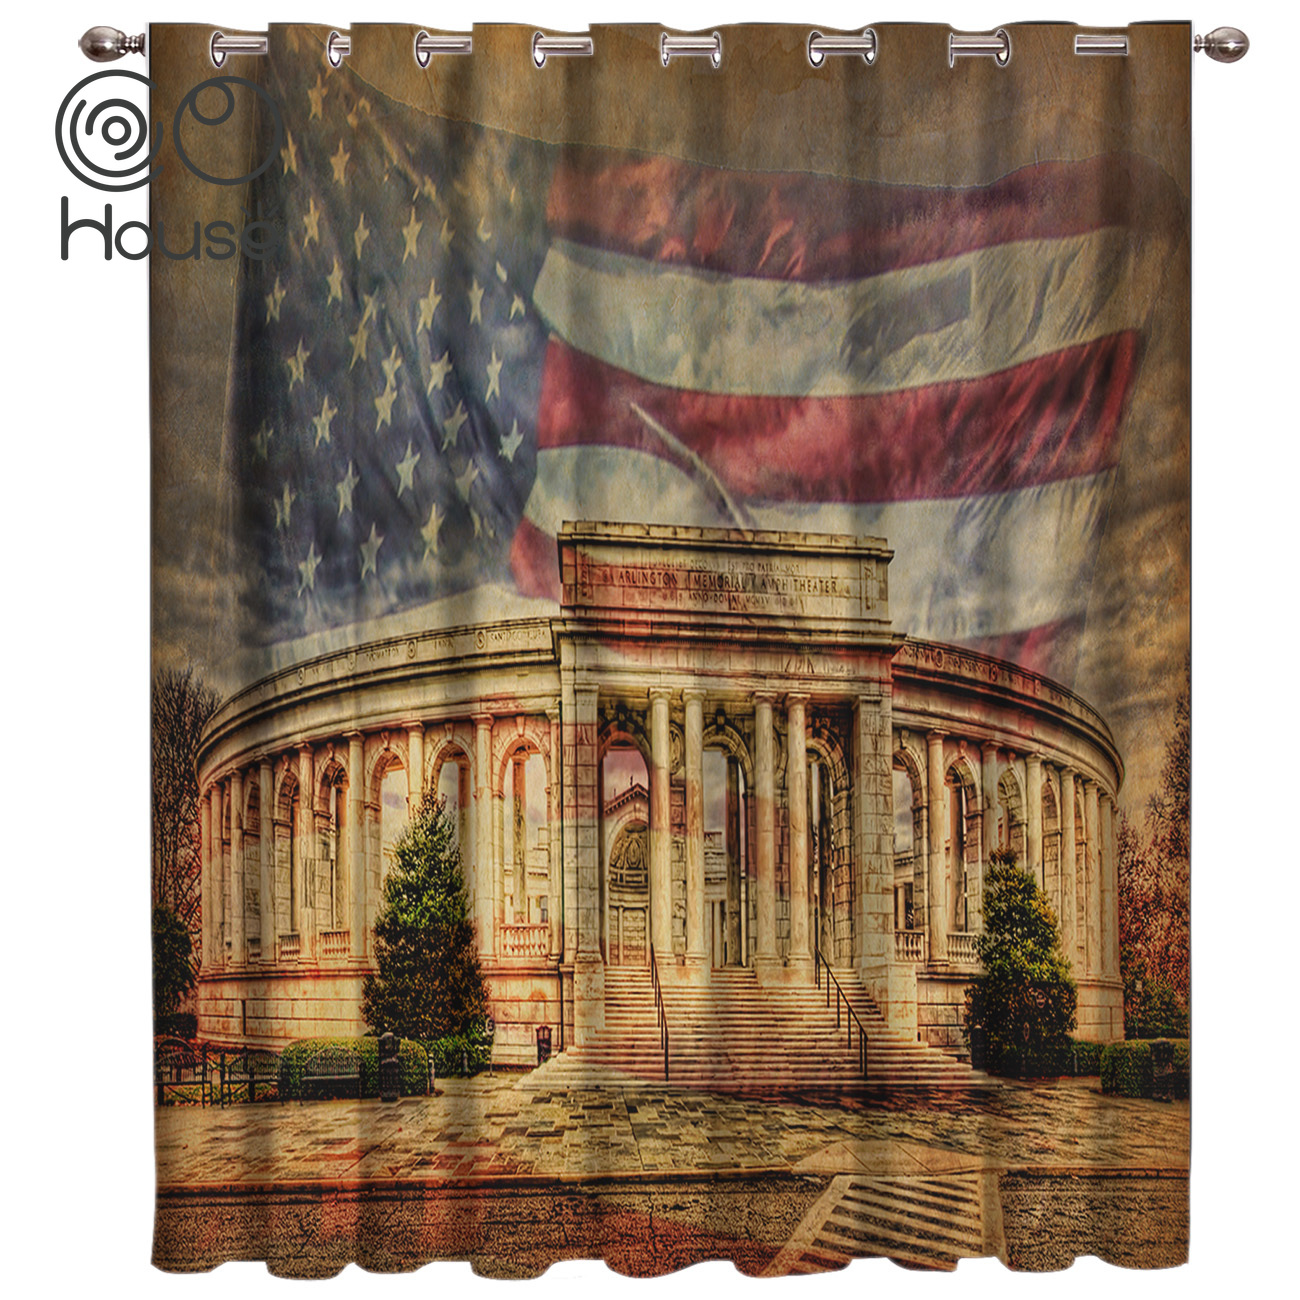 COCOHouse American Flag Window Curtains Dark Window Blinds Living Room Blackout Bathroom Kitchen Outdoor Kids Curtain Panels